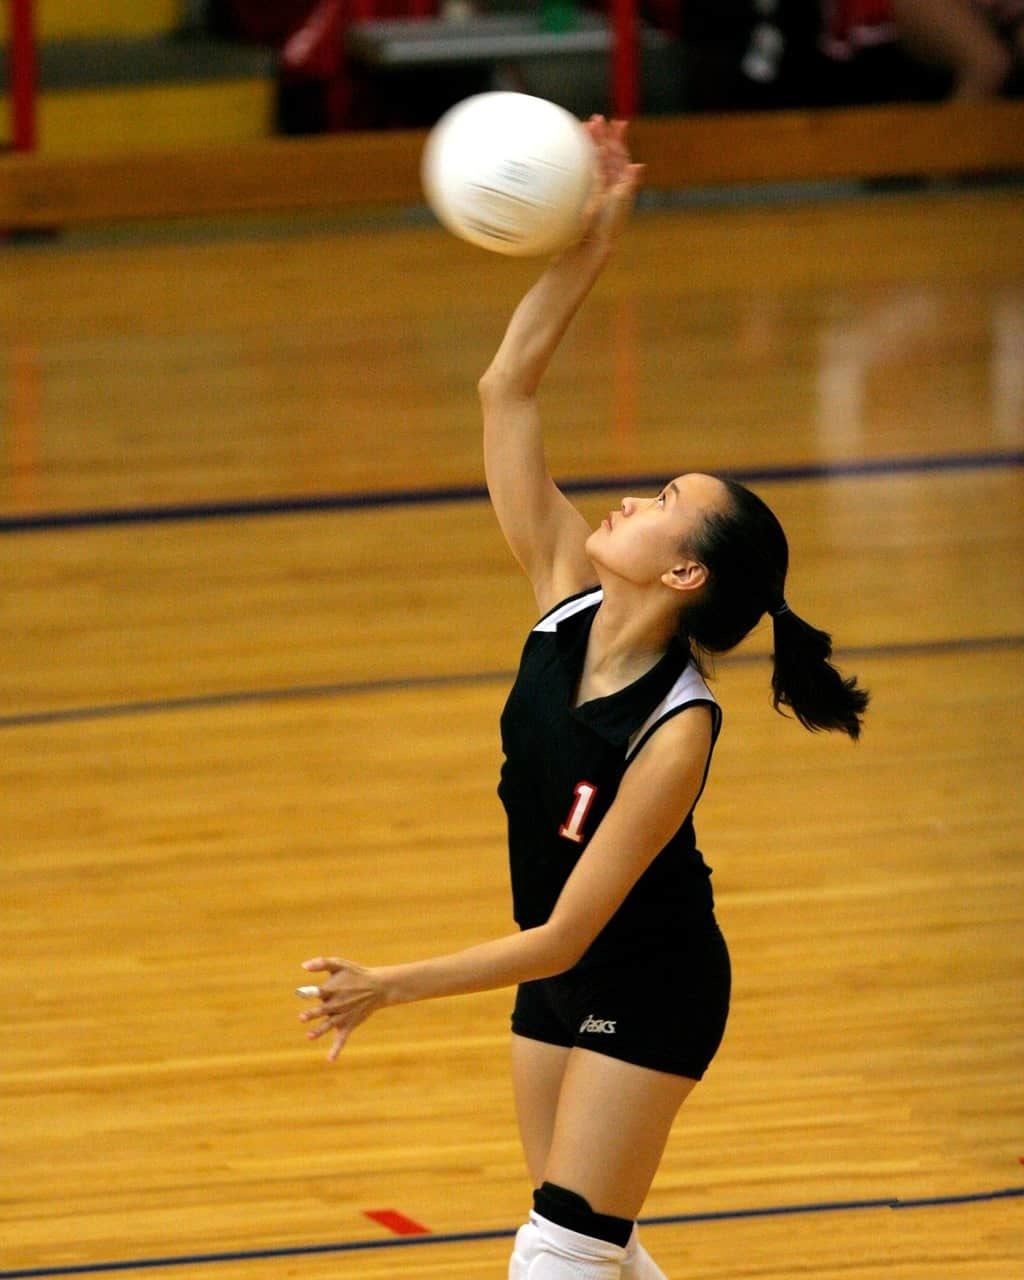 Volleyball player spiking a ball